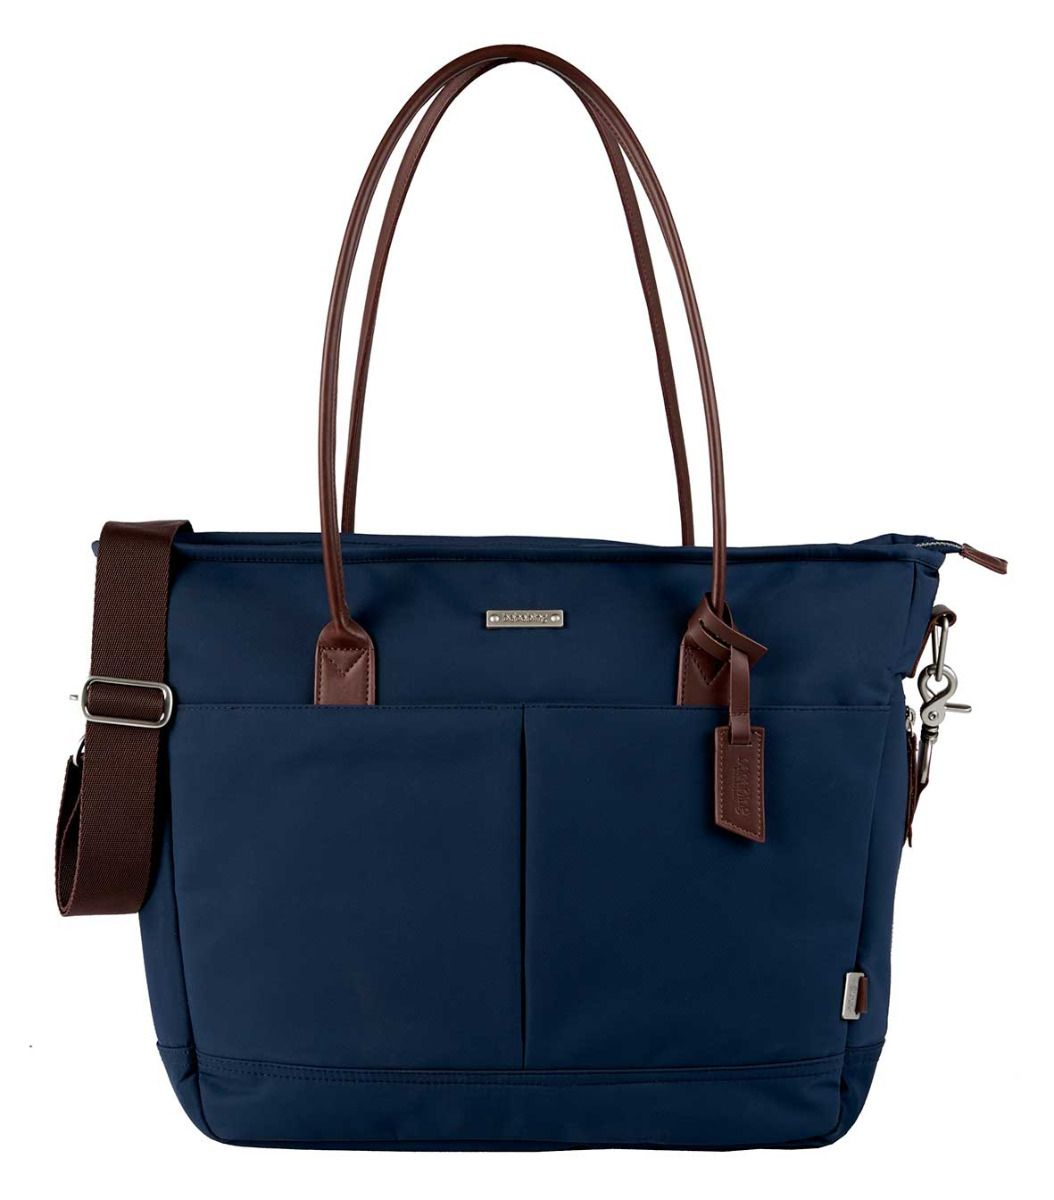 The Tilly Tote Diaper Bag